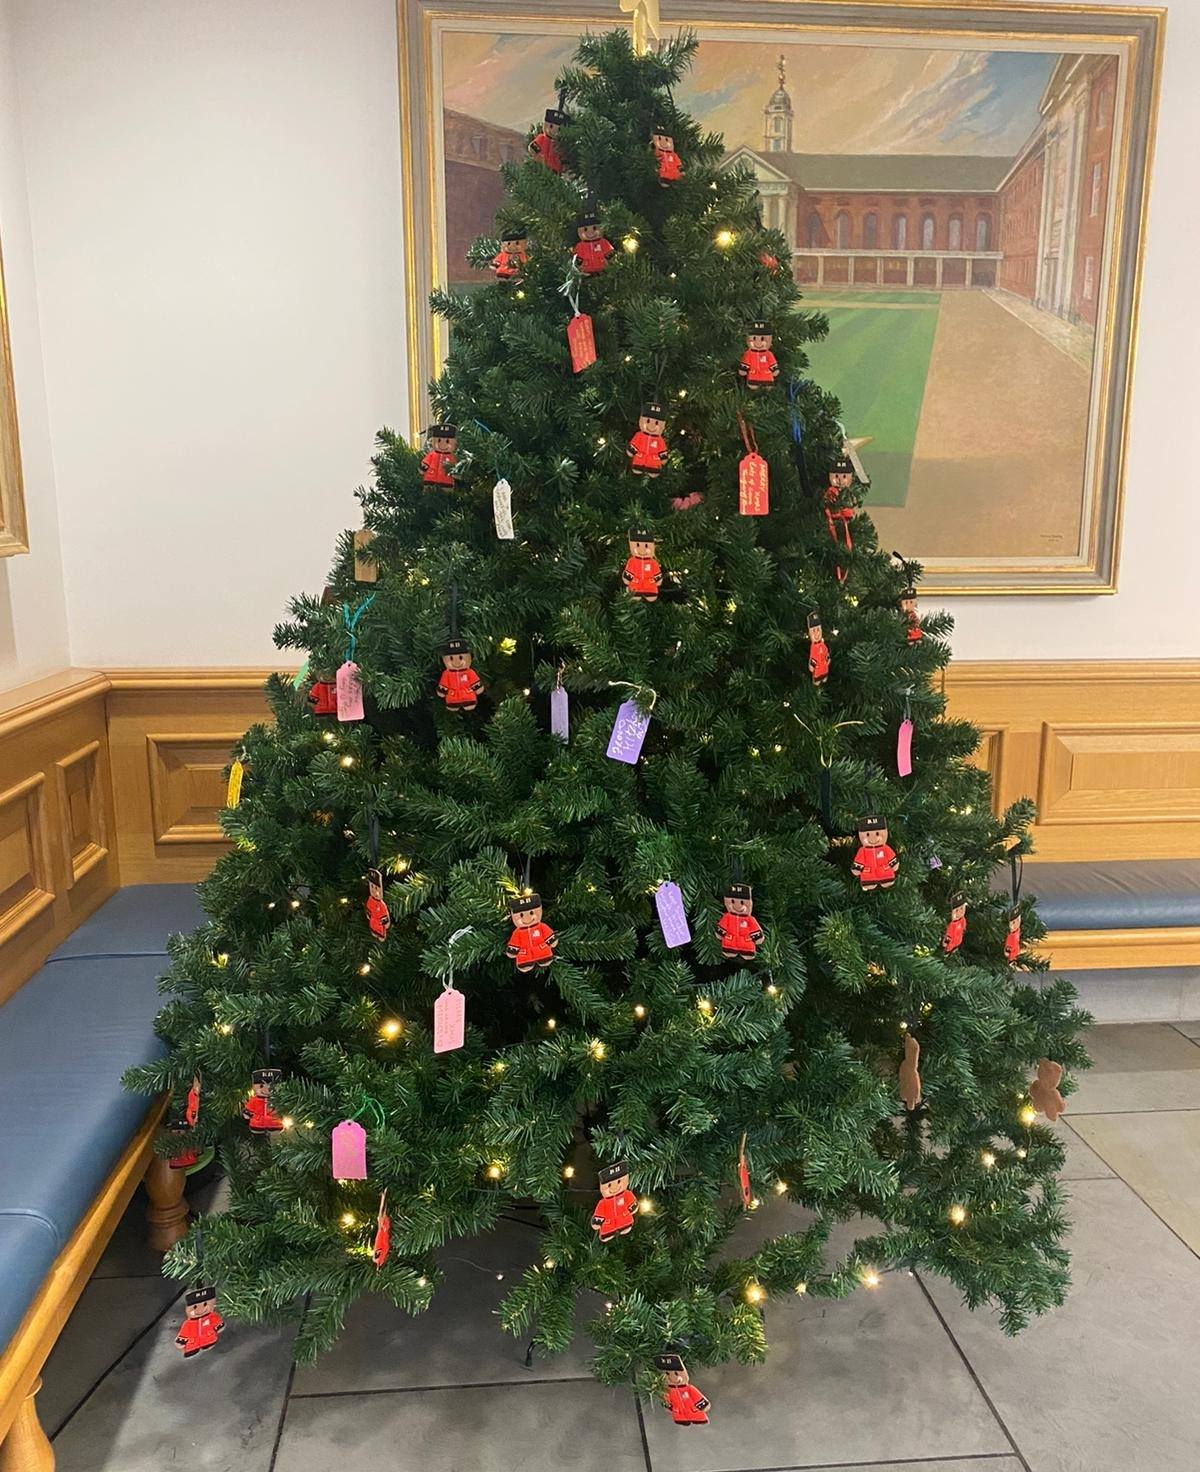 Christmas Tree in the Infirmary